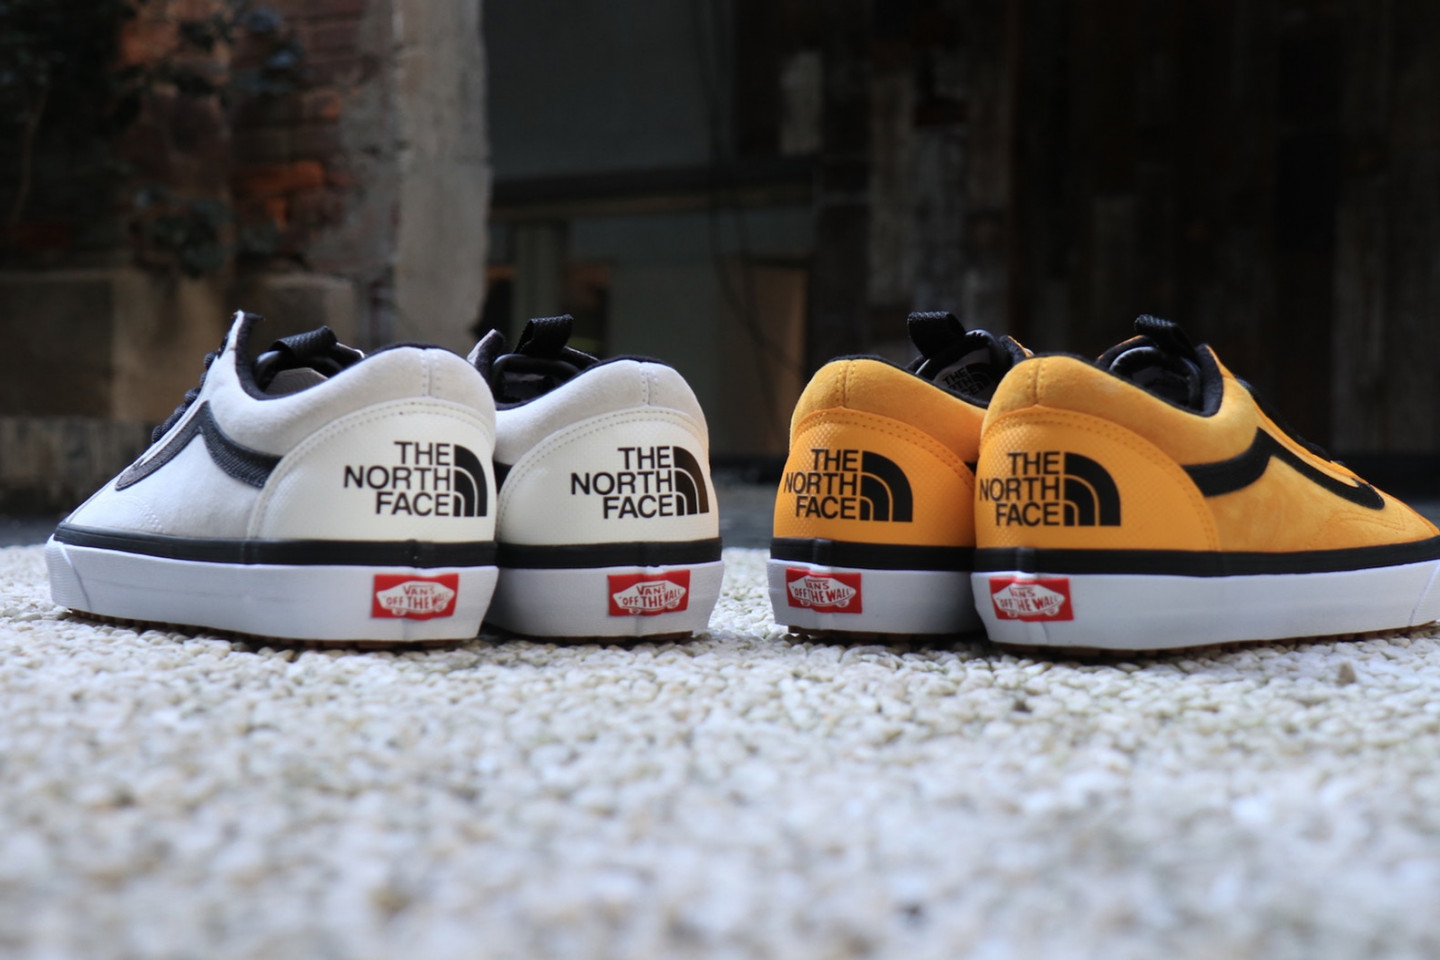 The North Face x Vans Collection Brings Us Something Special